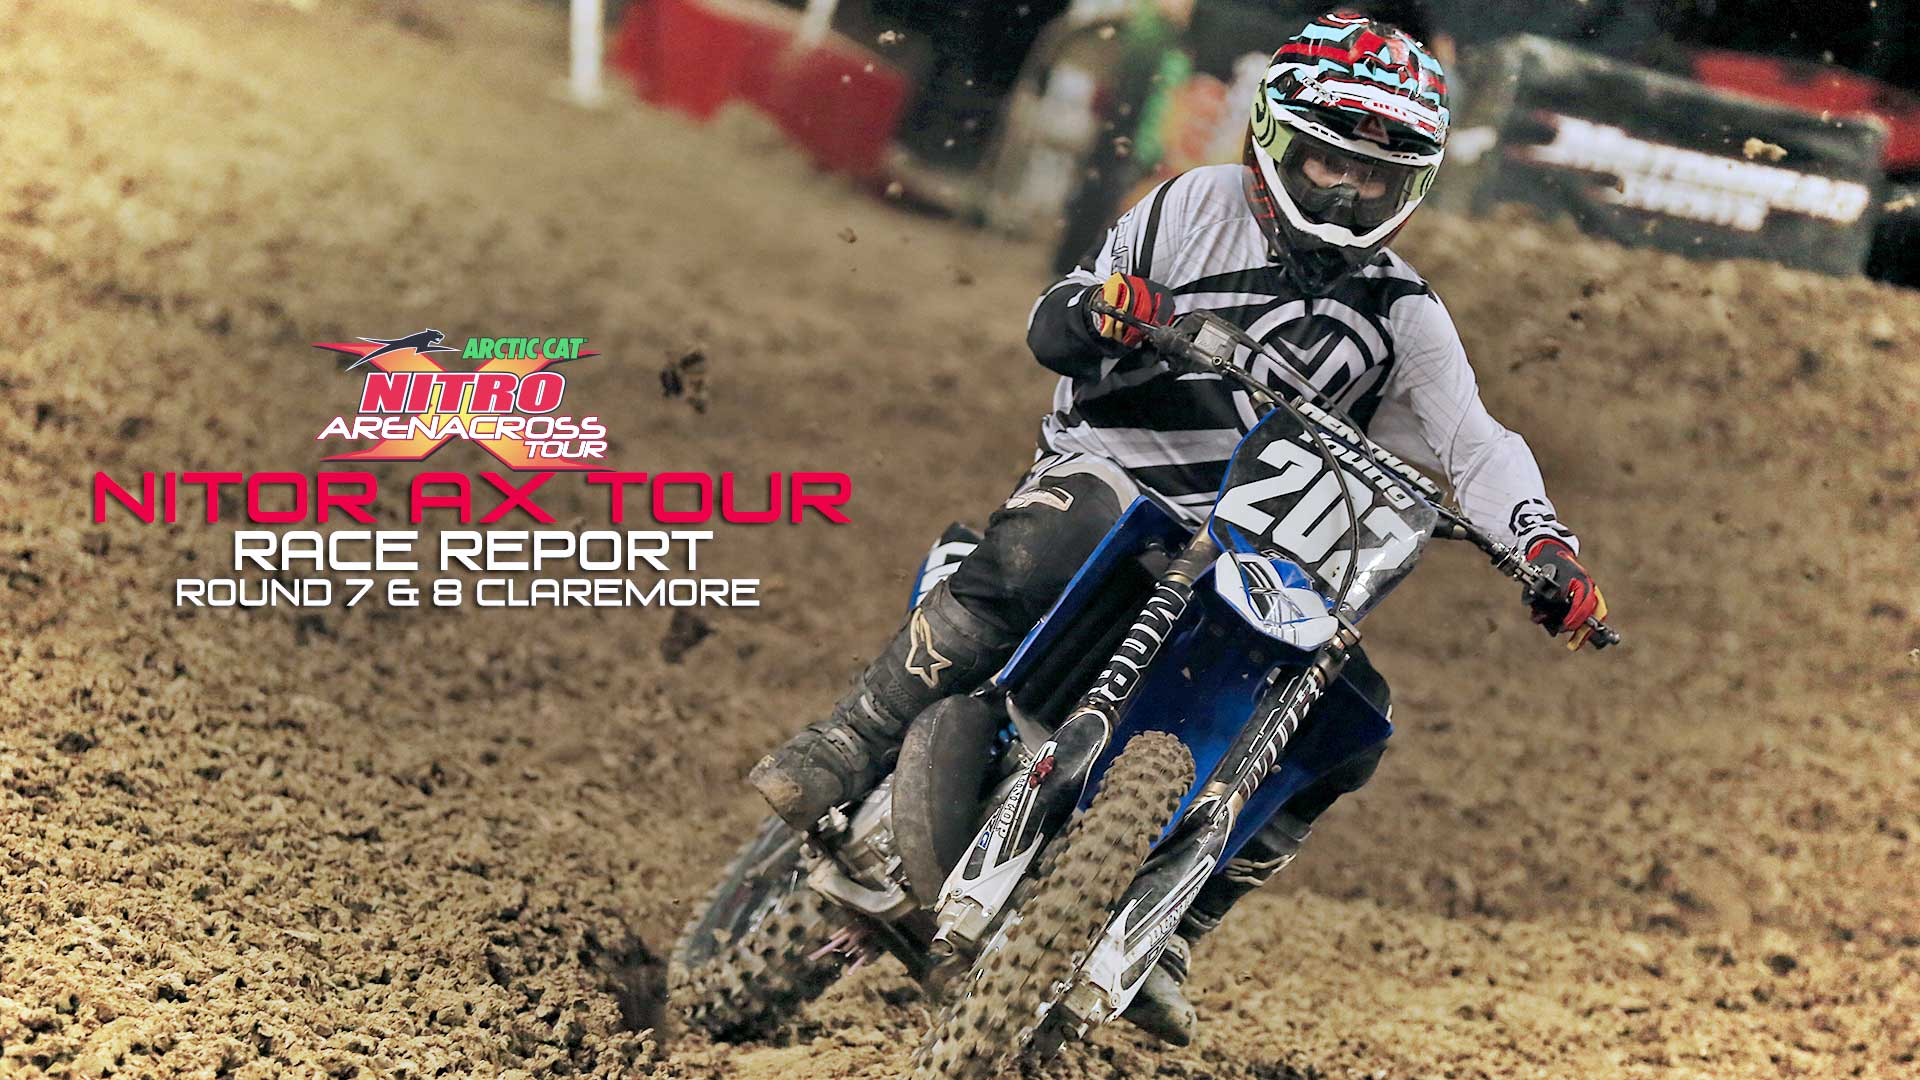 RACE REPORT: Nitro AX Tour - Topeka